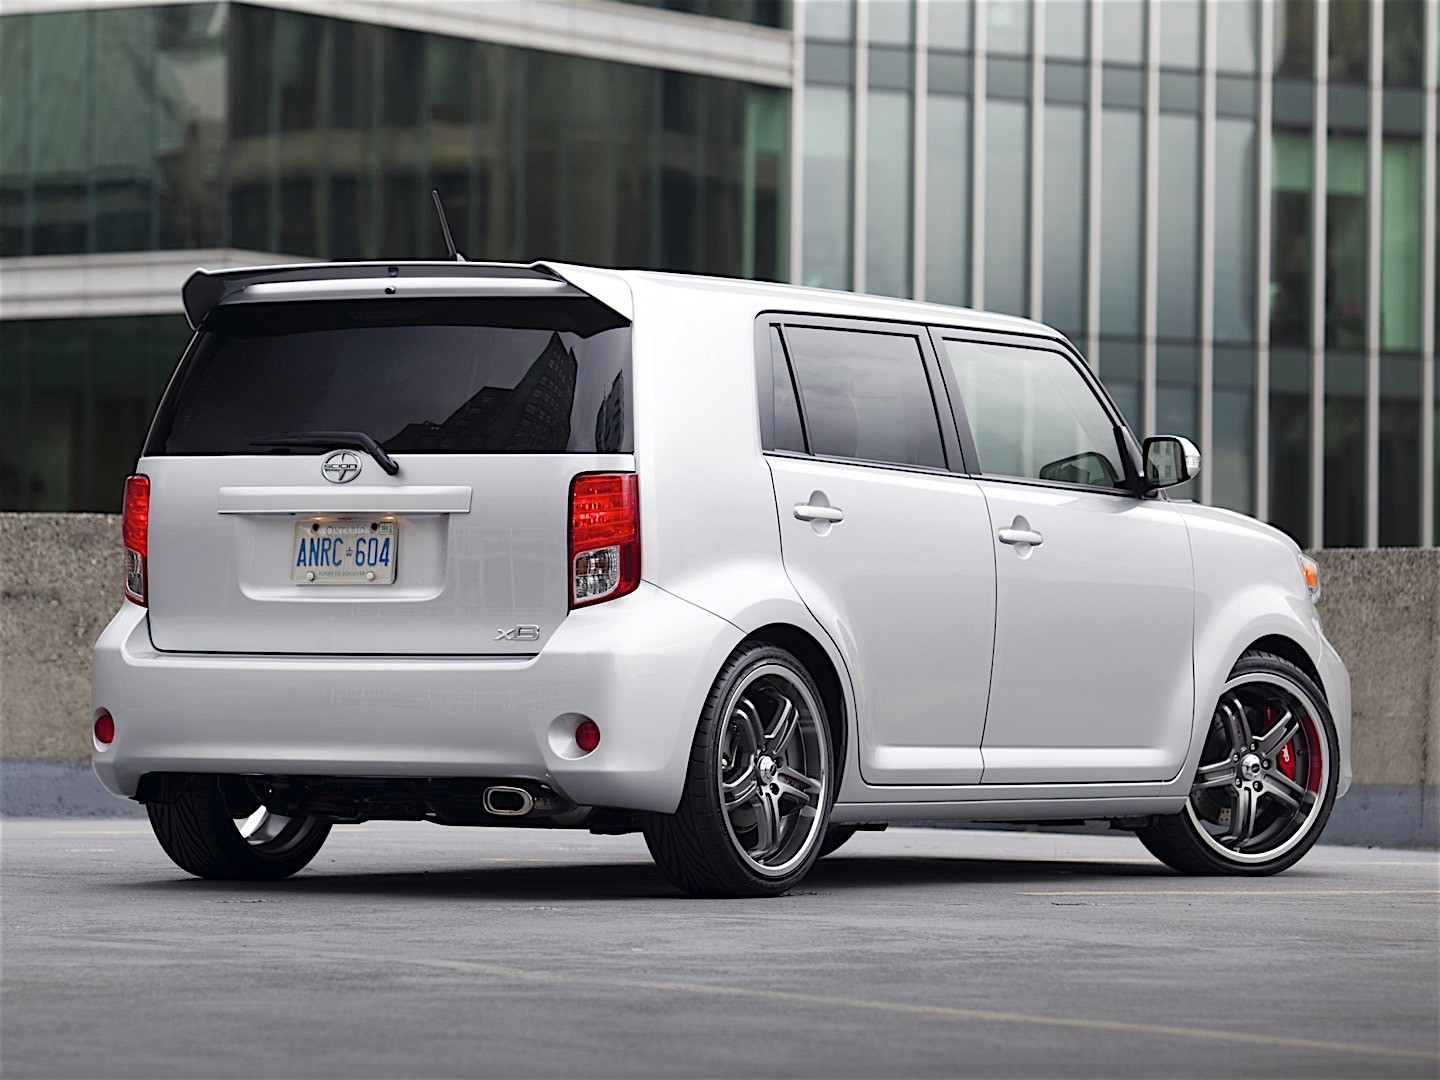 scion xb specs 2007 2008 2009 2010 2011 2012 2013 2014 2015 autoevolution. Black Bedroom Furniture Sets. Home Design Ideas